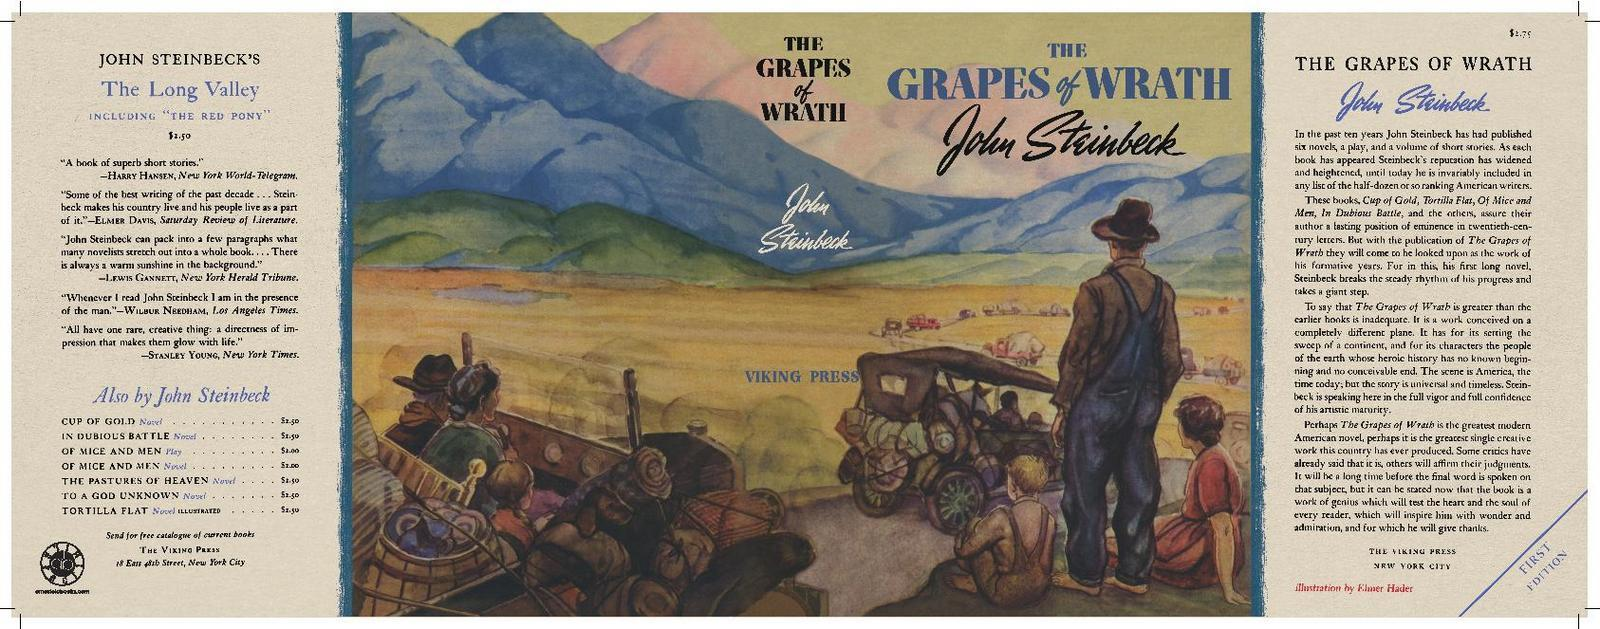 The Grapes of Wrath First Edition